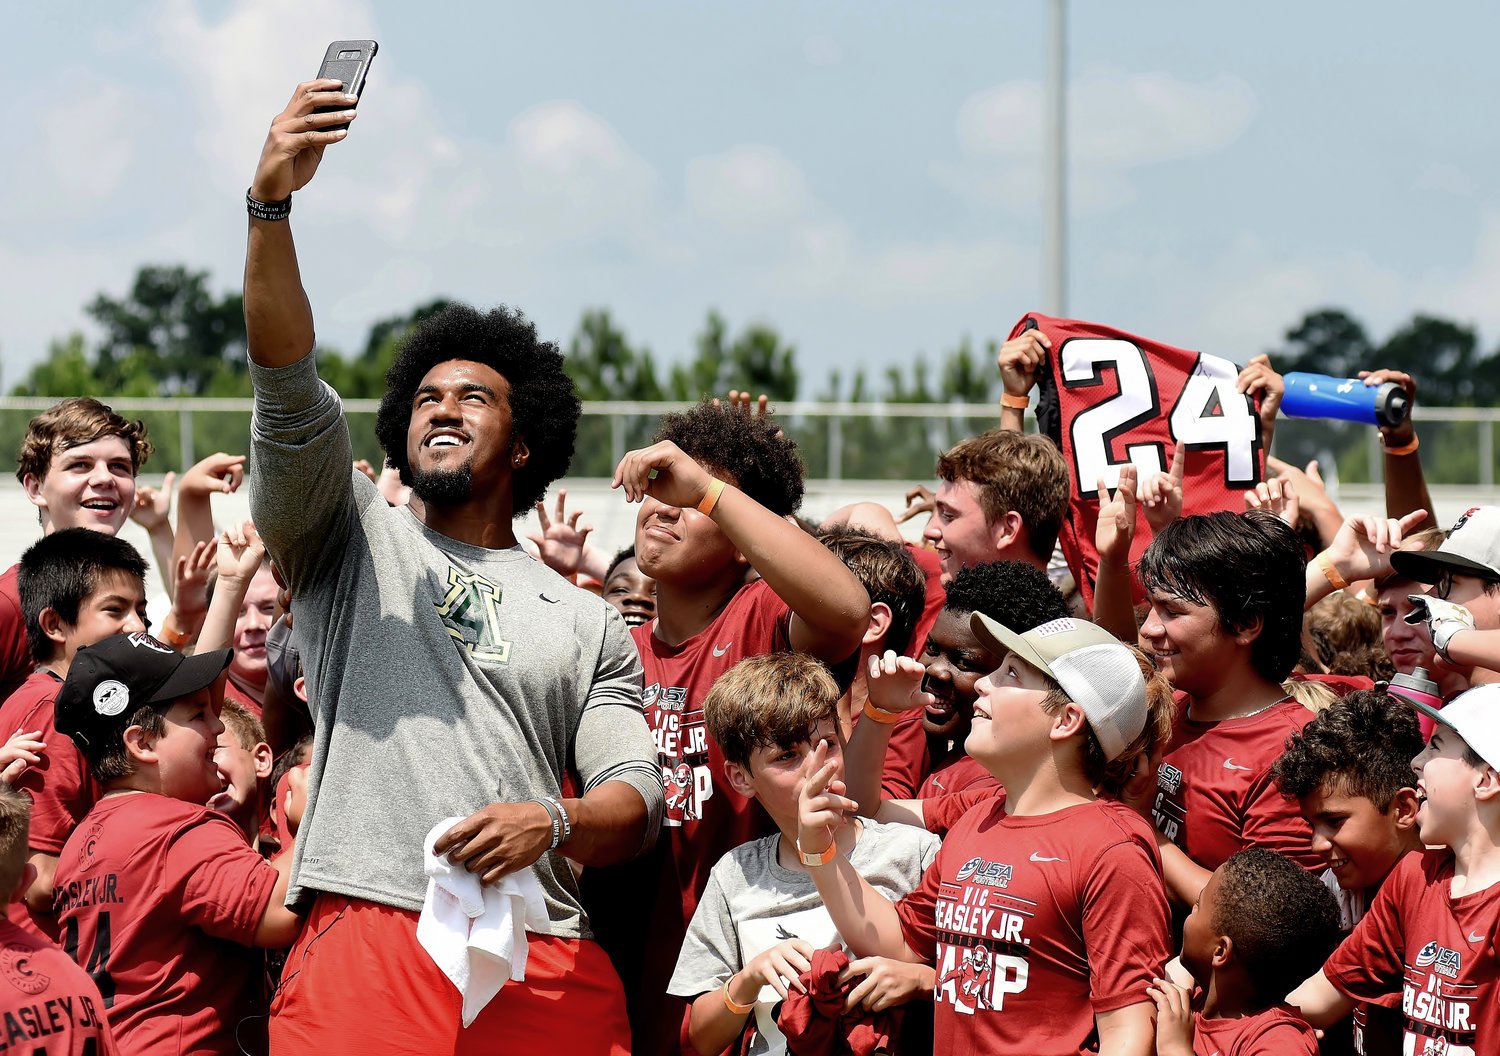 Vic Beasley Jr. gathers the participants of his football camp together for a selfie. More than 200 young football enthusiasts attended Beasley's camp at Adairsville High School on June 16.